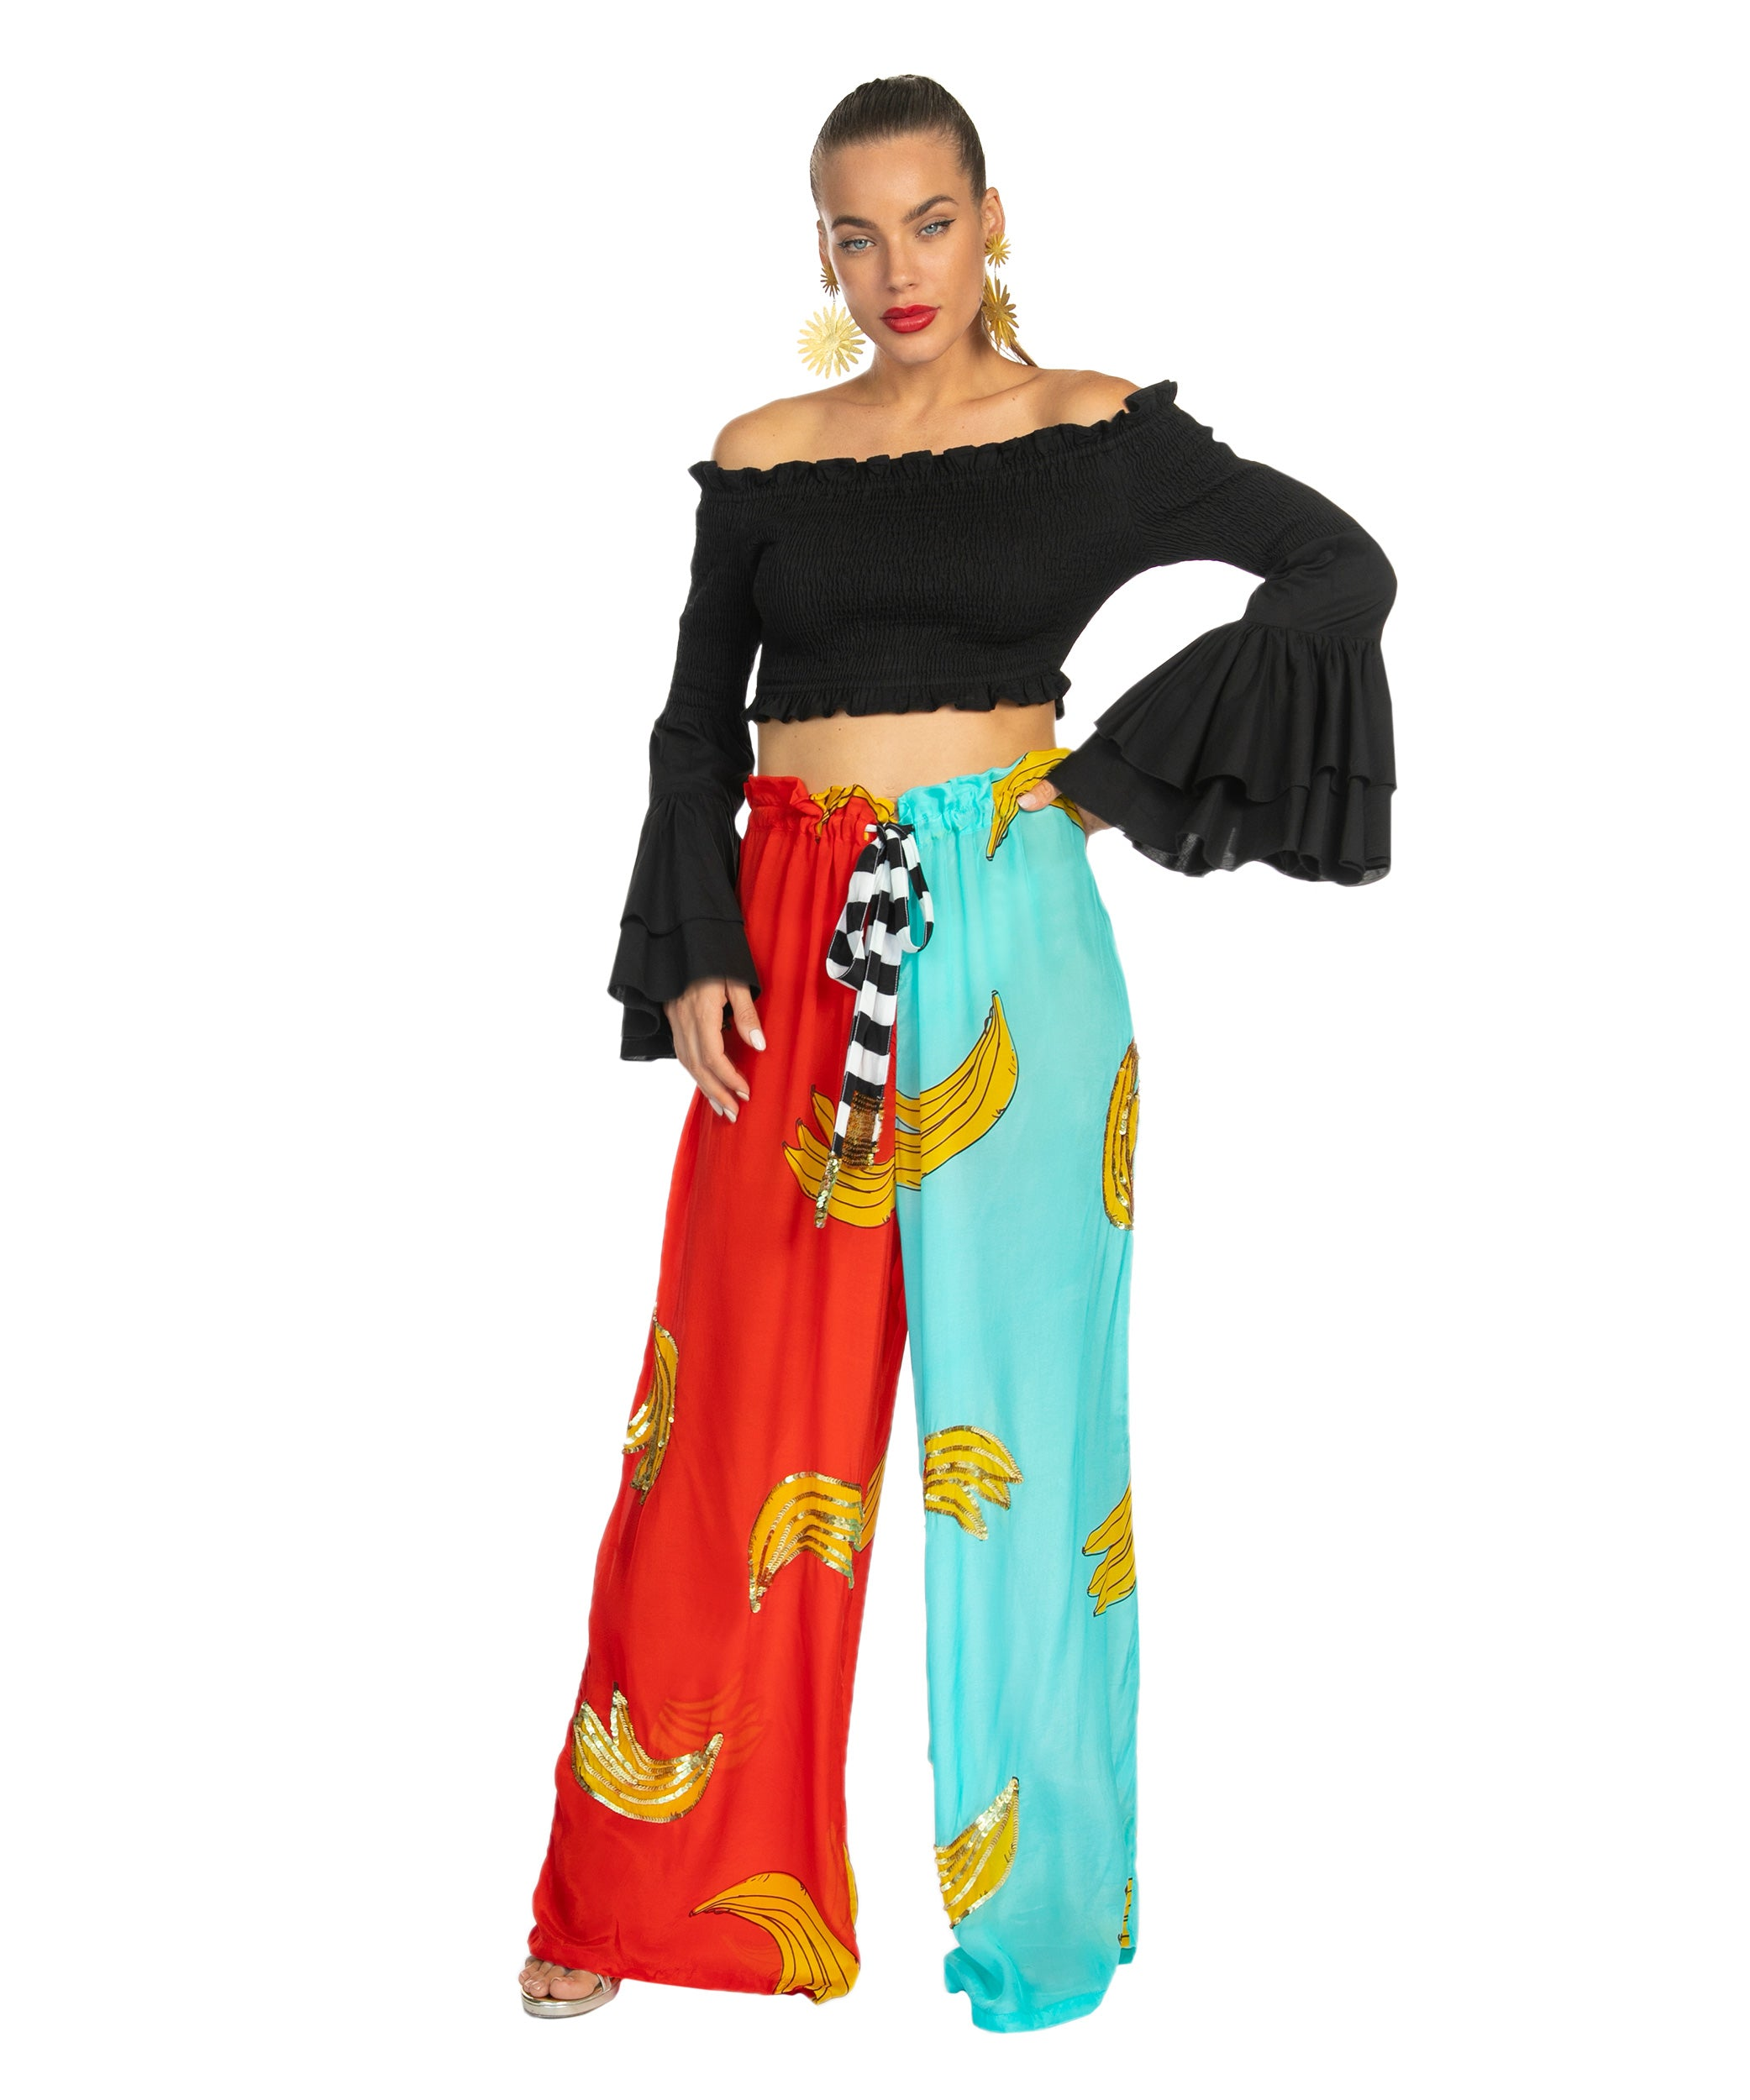 The Platano Drawstring Pant by Bonita Collective